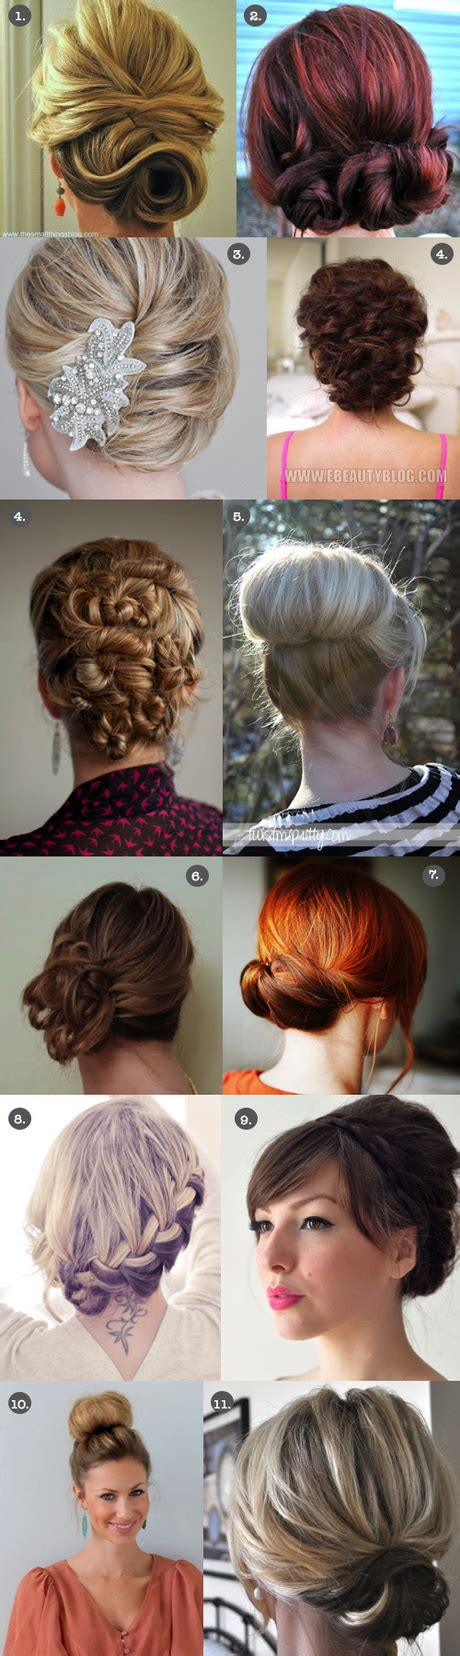 easy do it yourself prom hairstyles